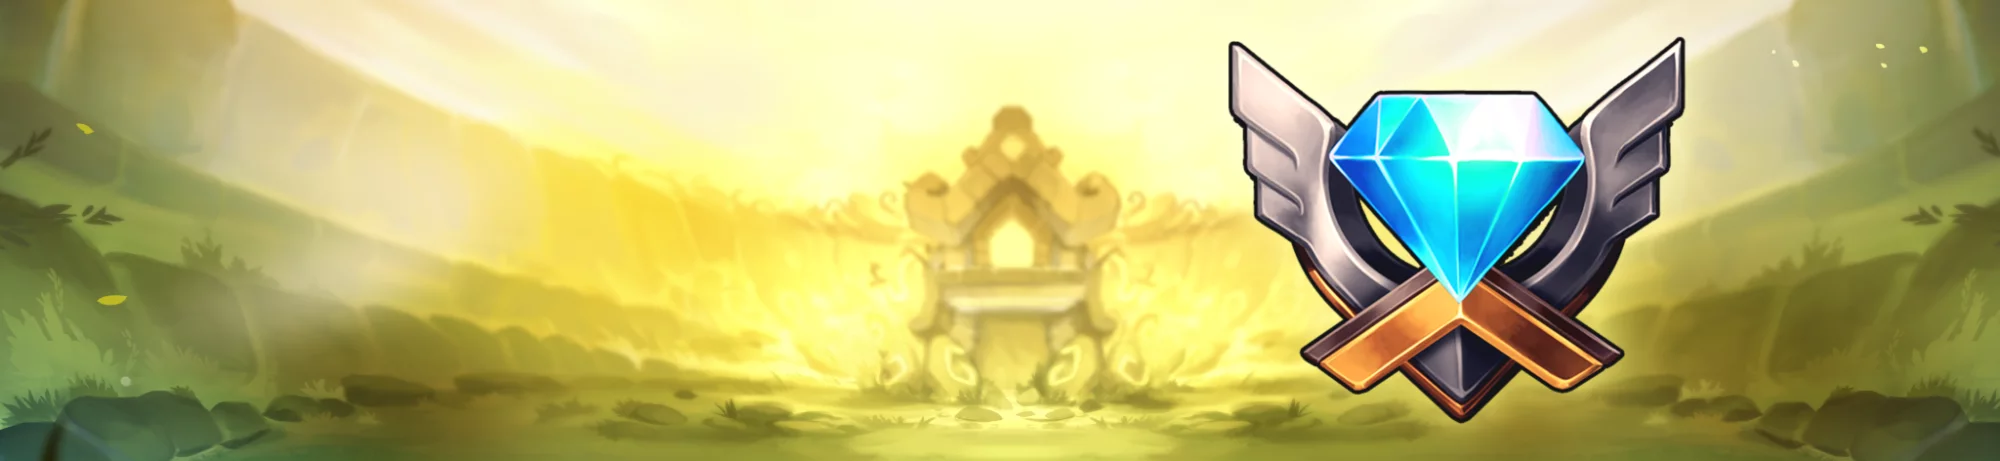 banner-patch-mar.png